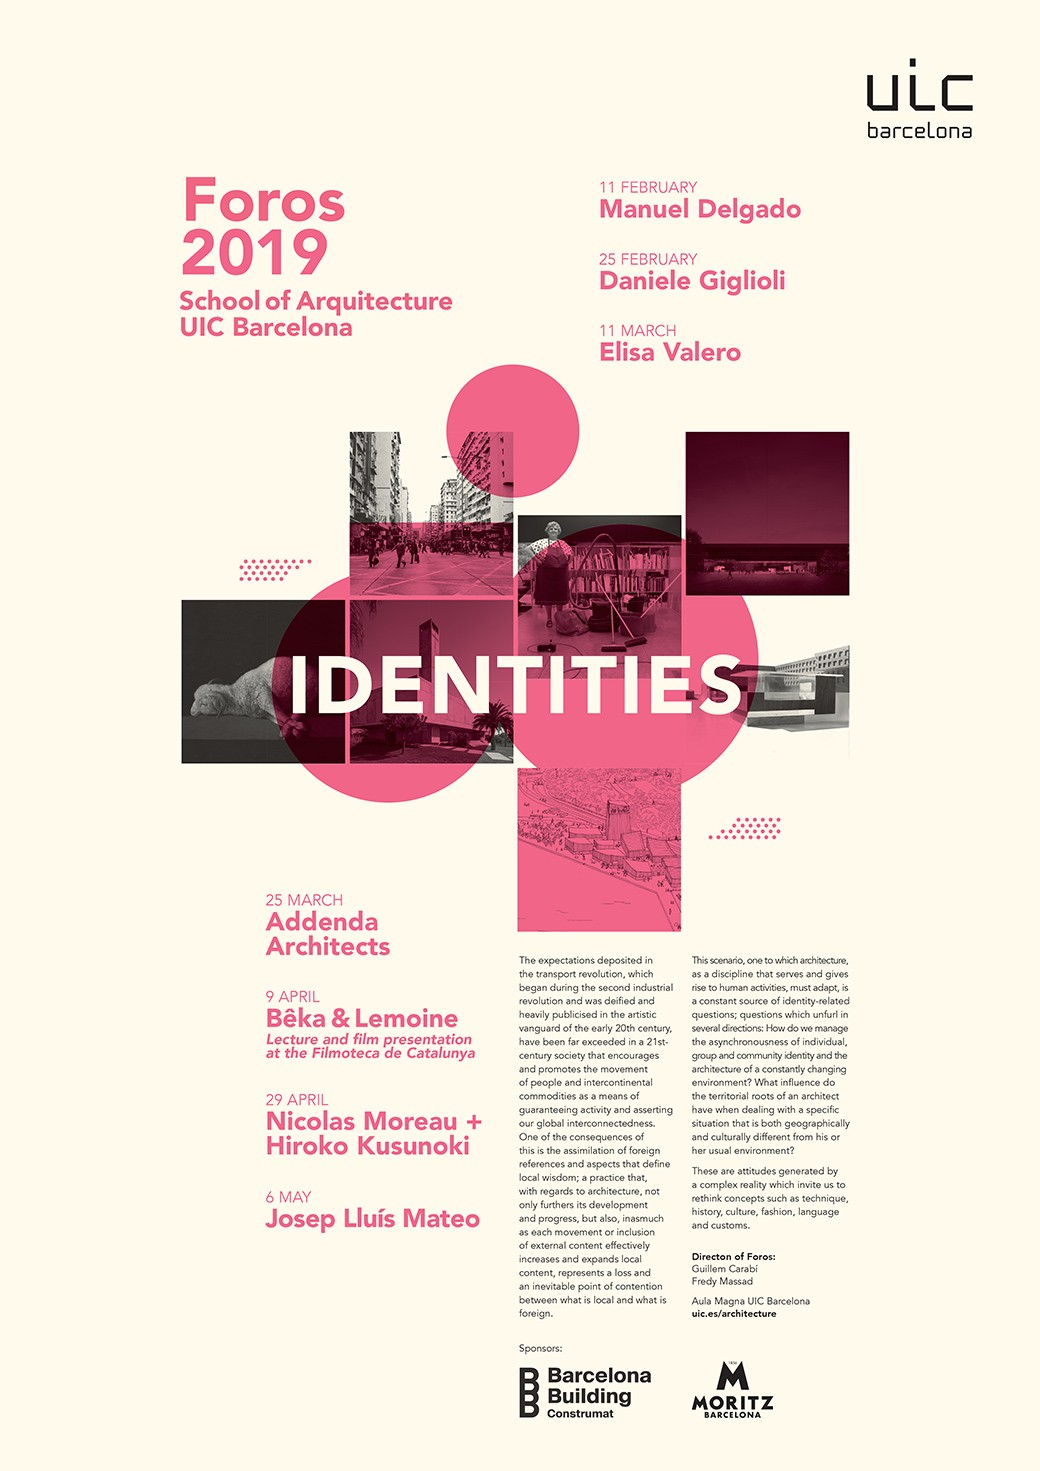 Foros UIC Barcelona School of Architecture 2019